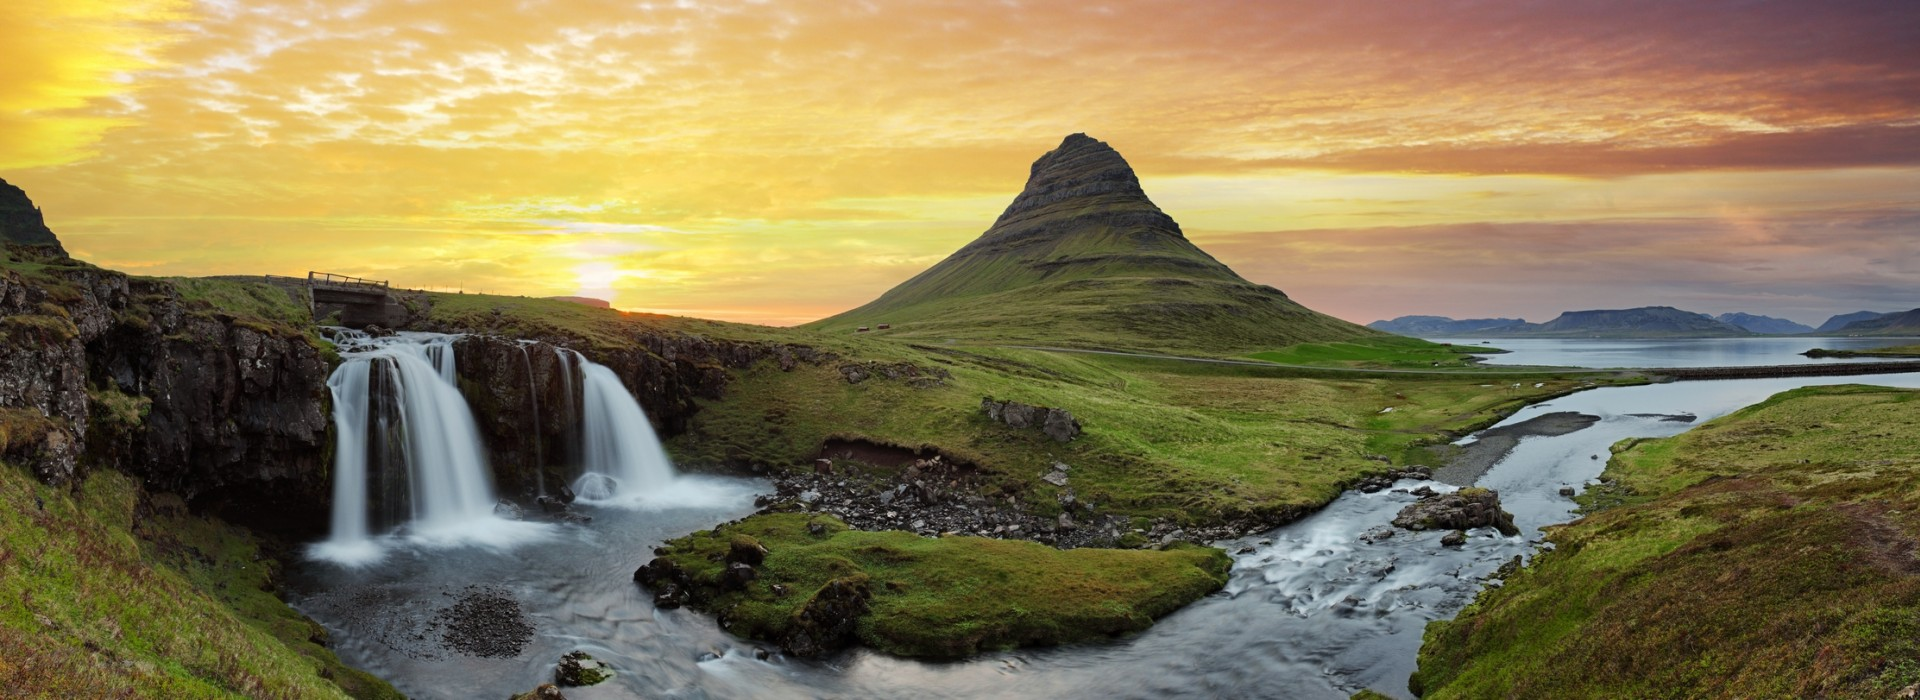 Iceland Tours and Trips 20182019 140 Best